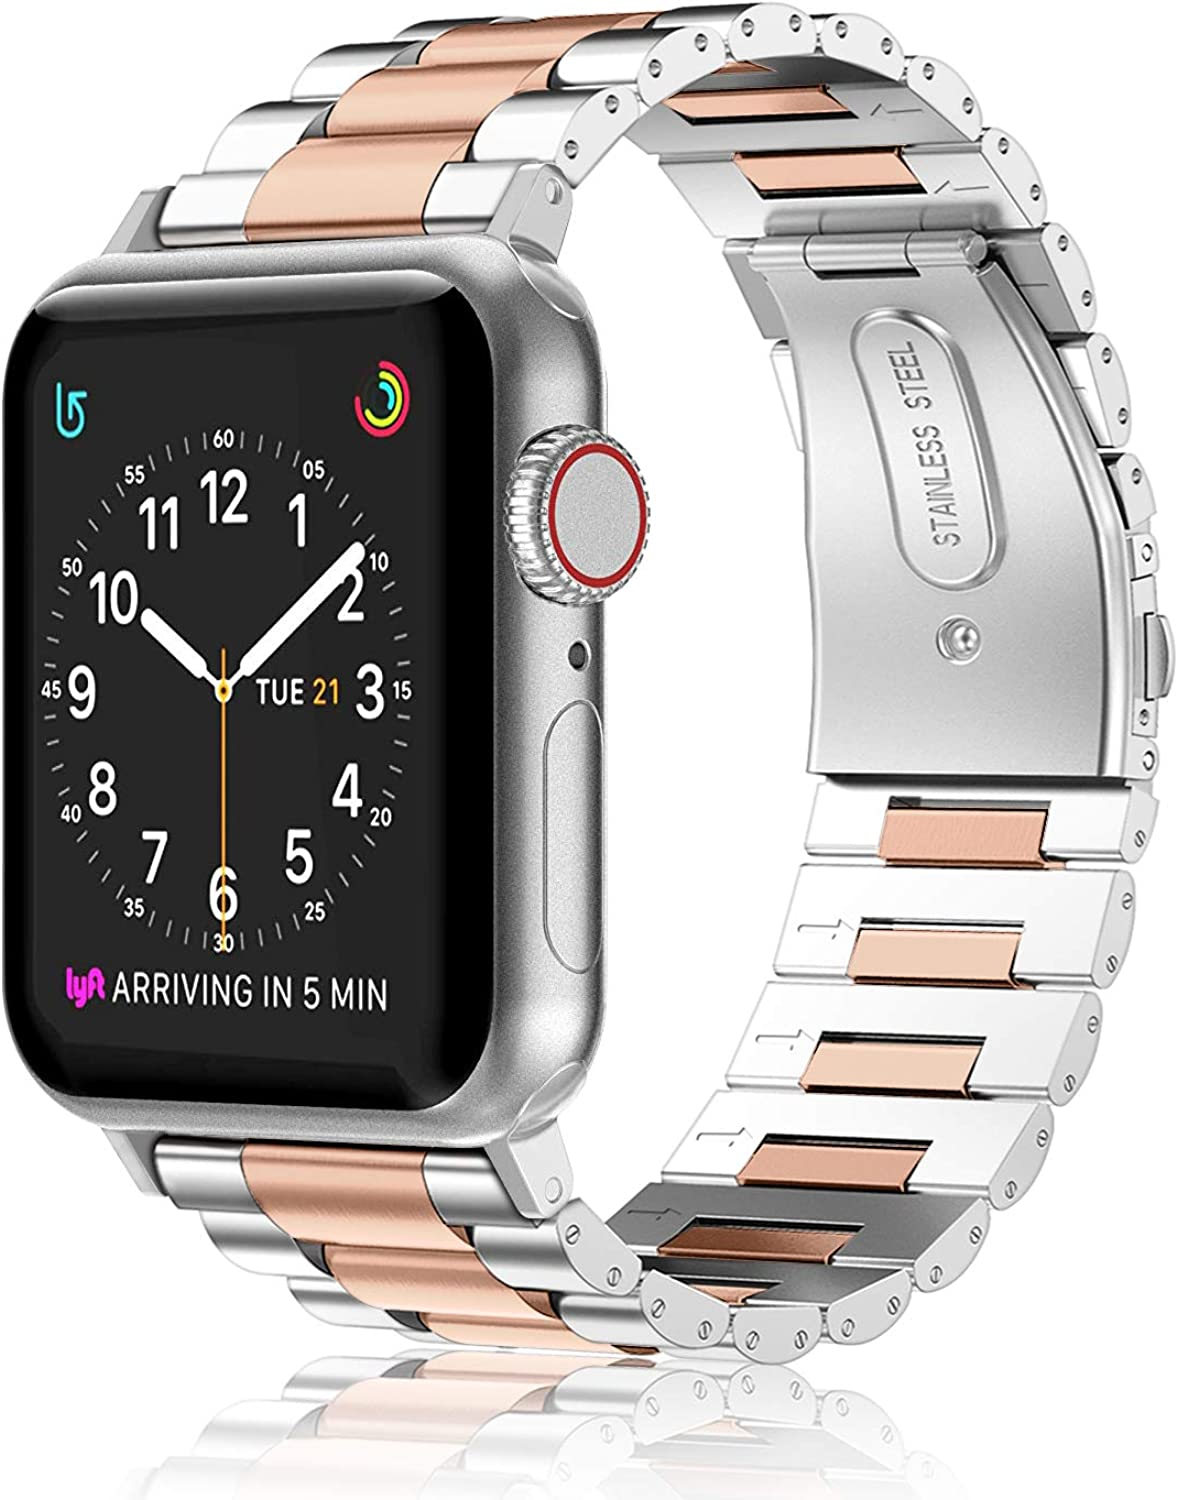 Fintie Band Compatible with Apple Watch 44mm 42mm Series 6/5/4/3/2/1/SE, Premium Stainless Steel Metal Replacement Wrist Strap Bracelet Compatible with All Versions 44mm 42mm Apple Watch, Silver, Rose Gold